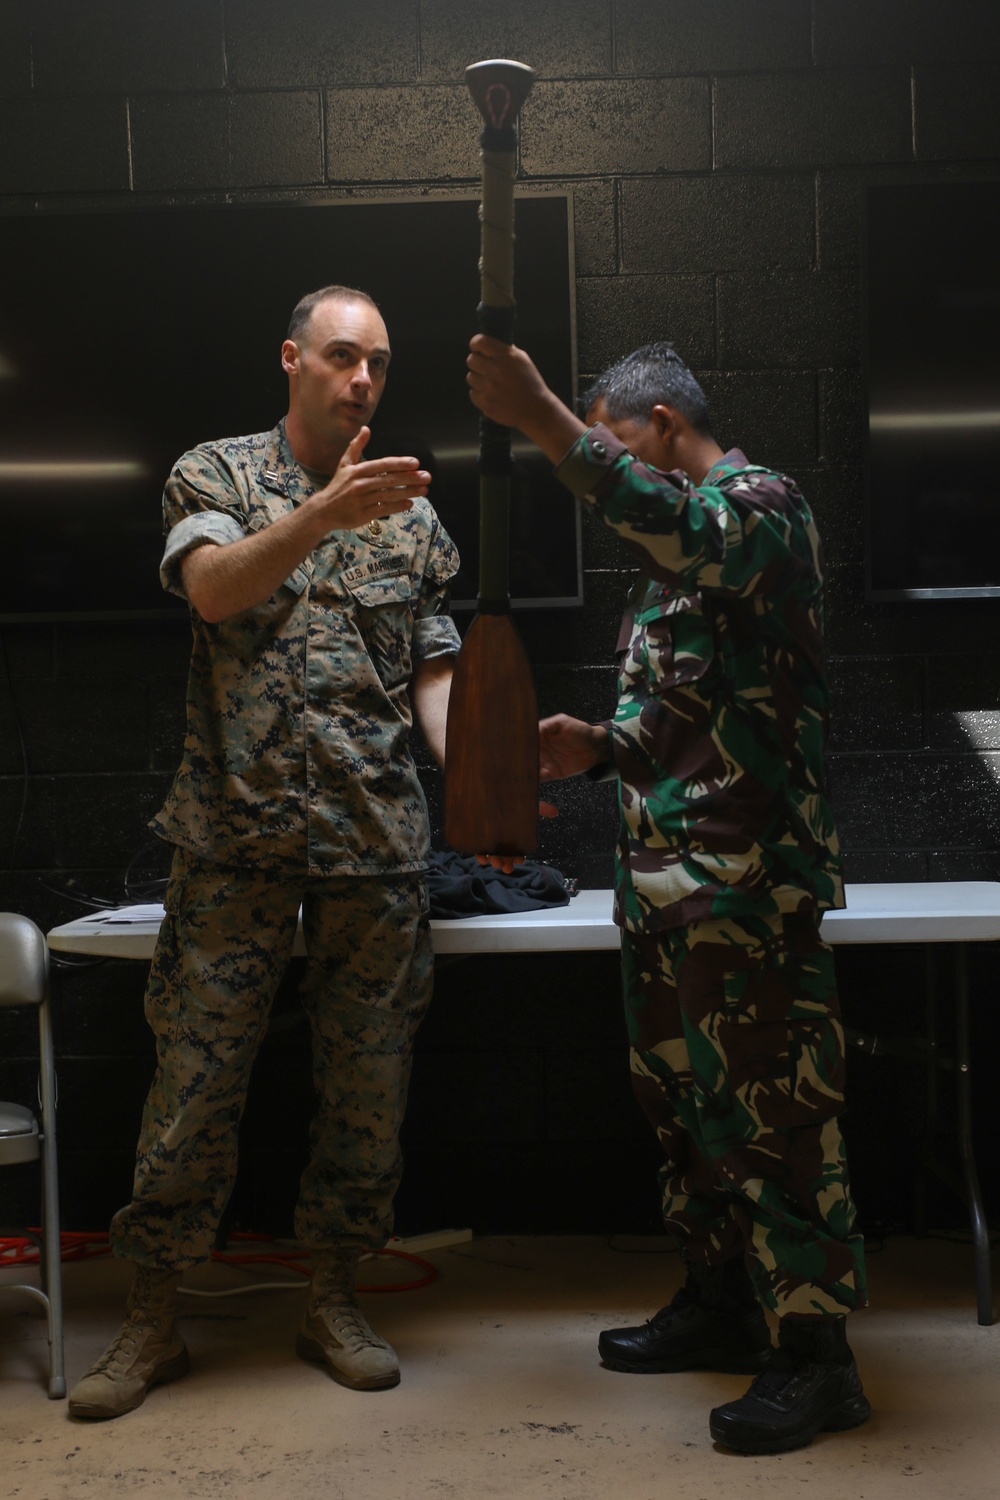 Indonesian Marines visit 1st Marine Division for a military exchange